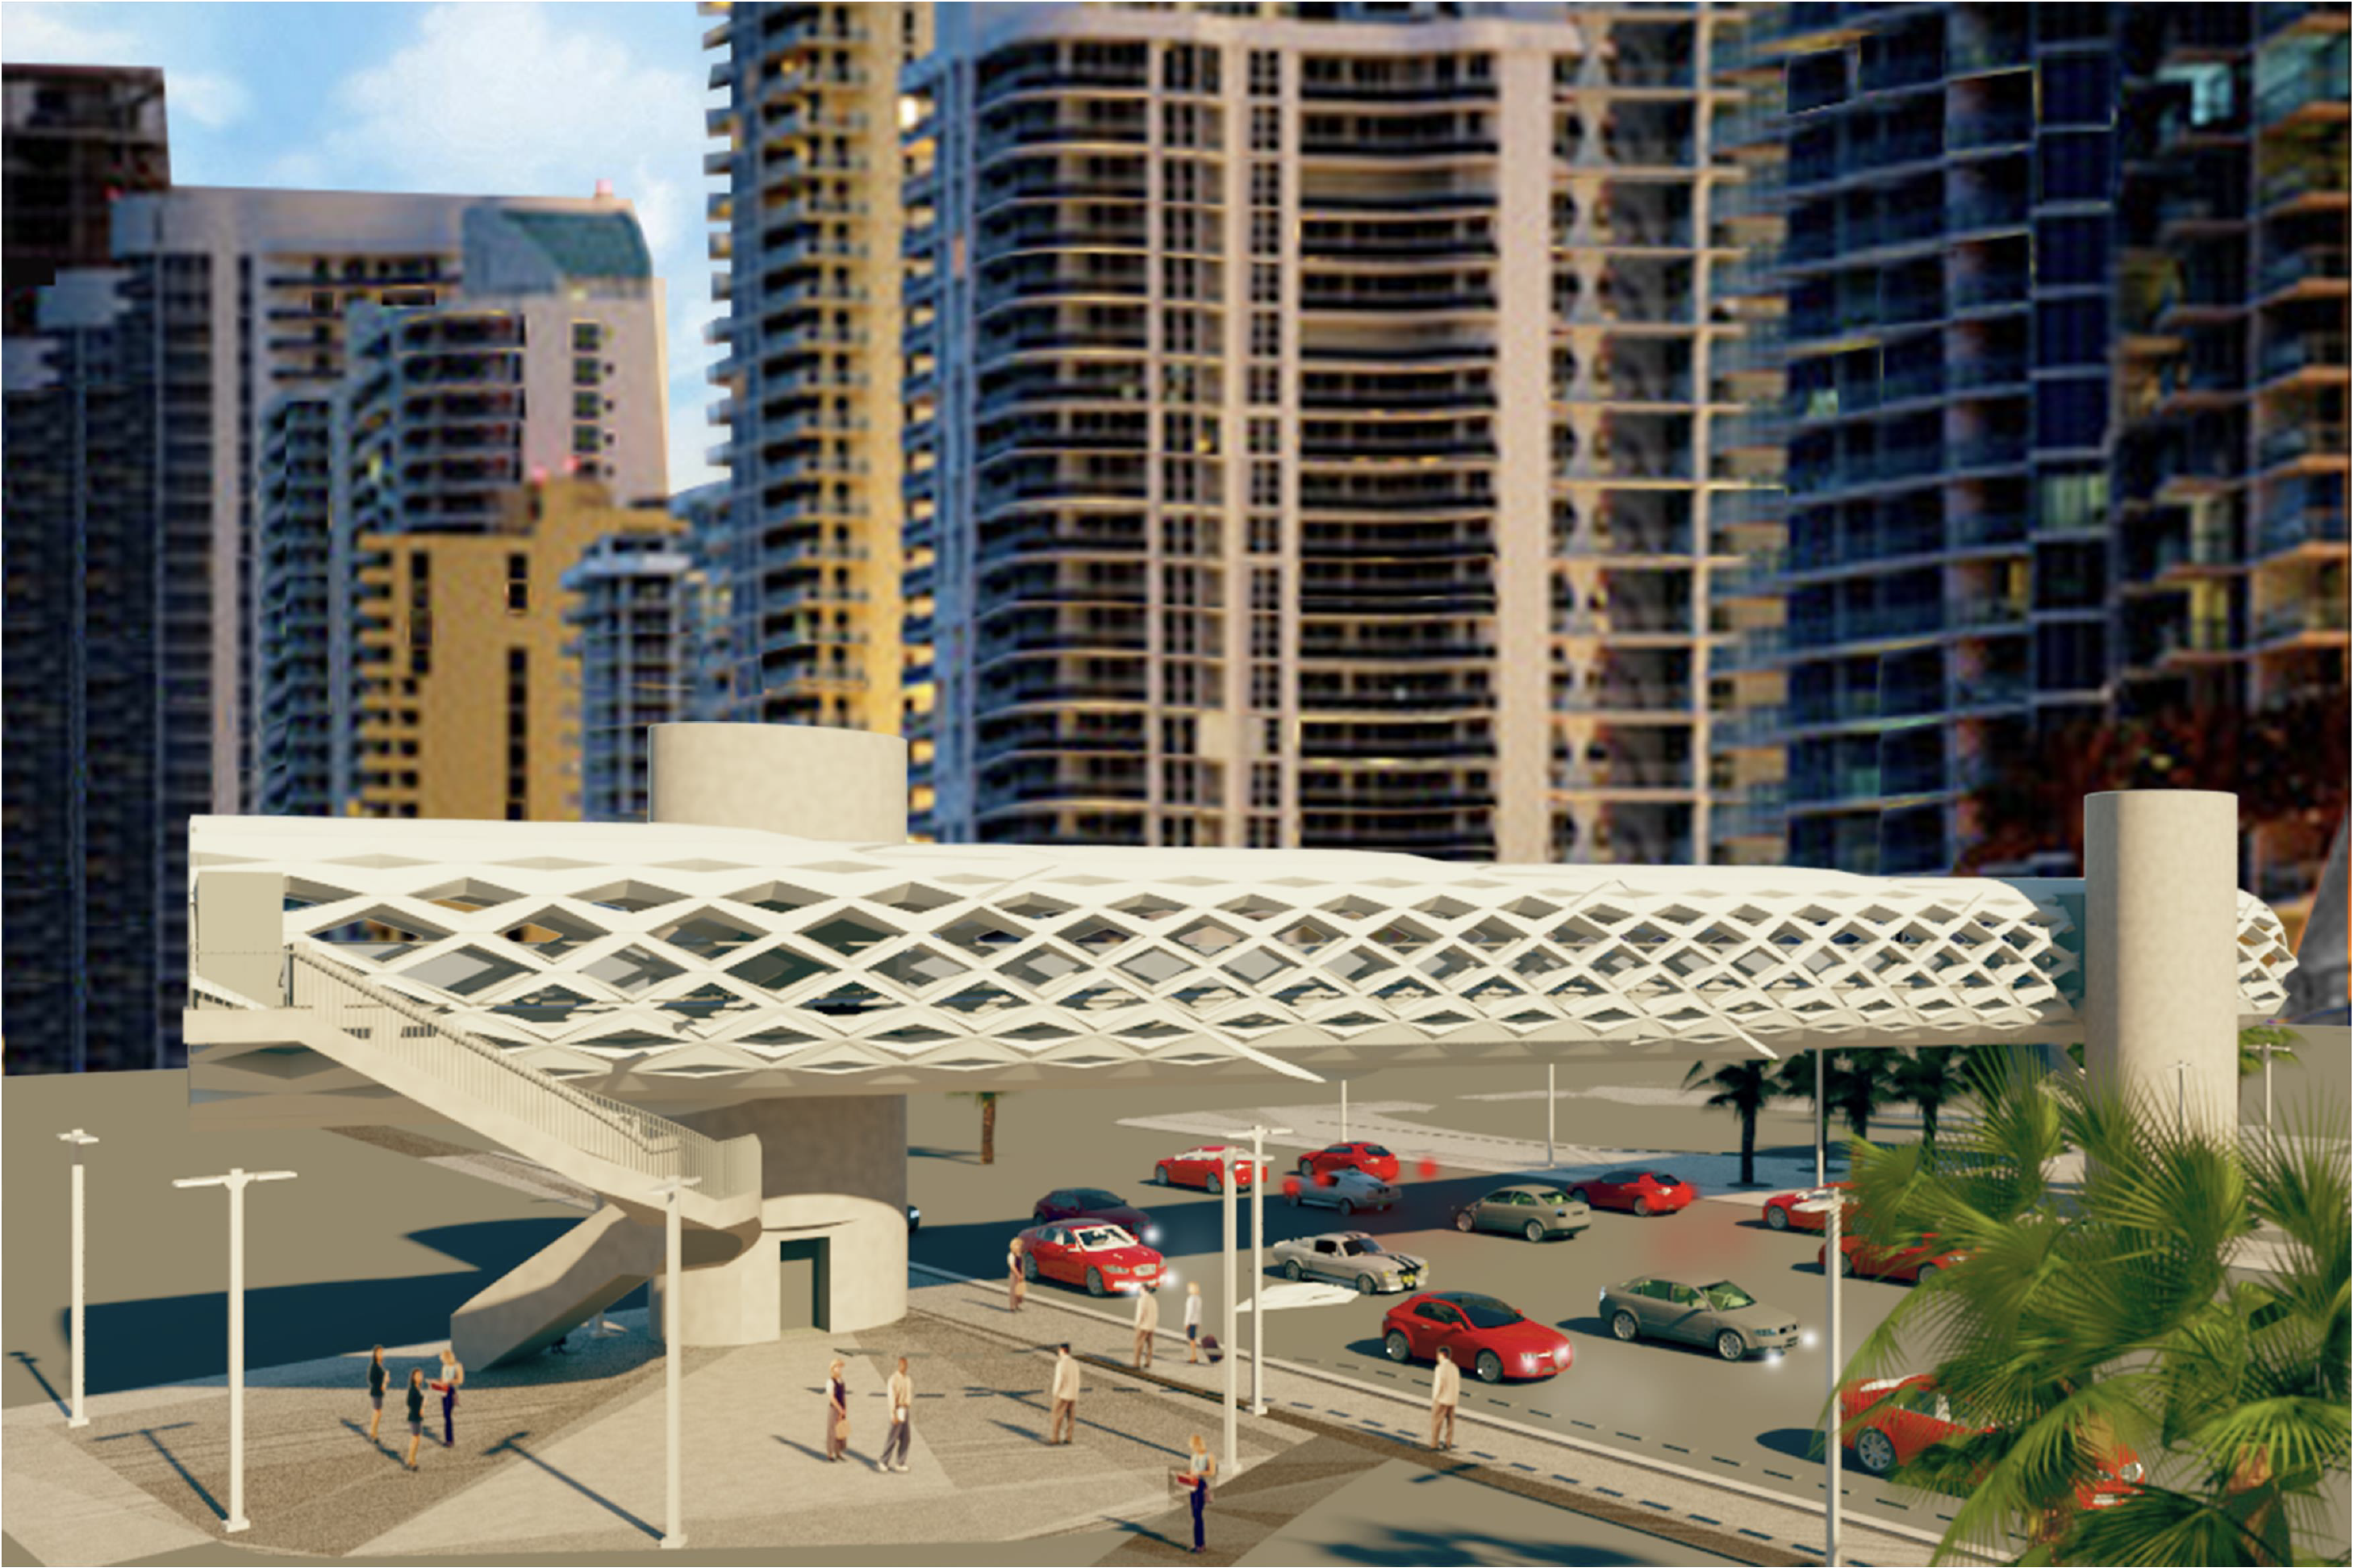 Government Center pedestrian bridge rendering